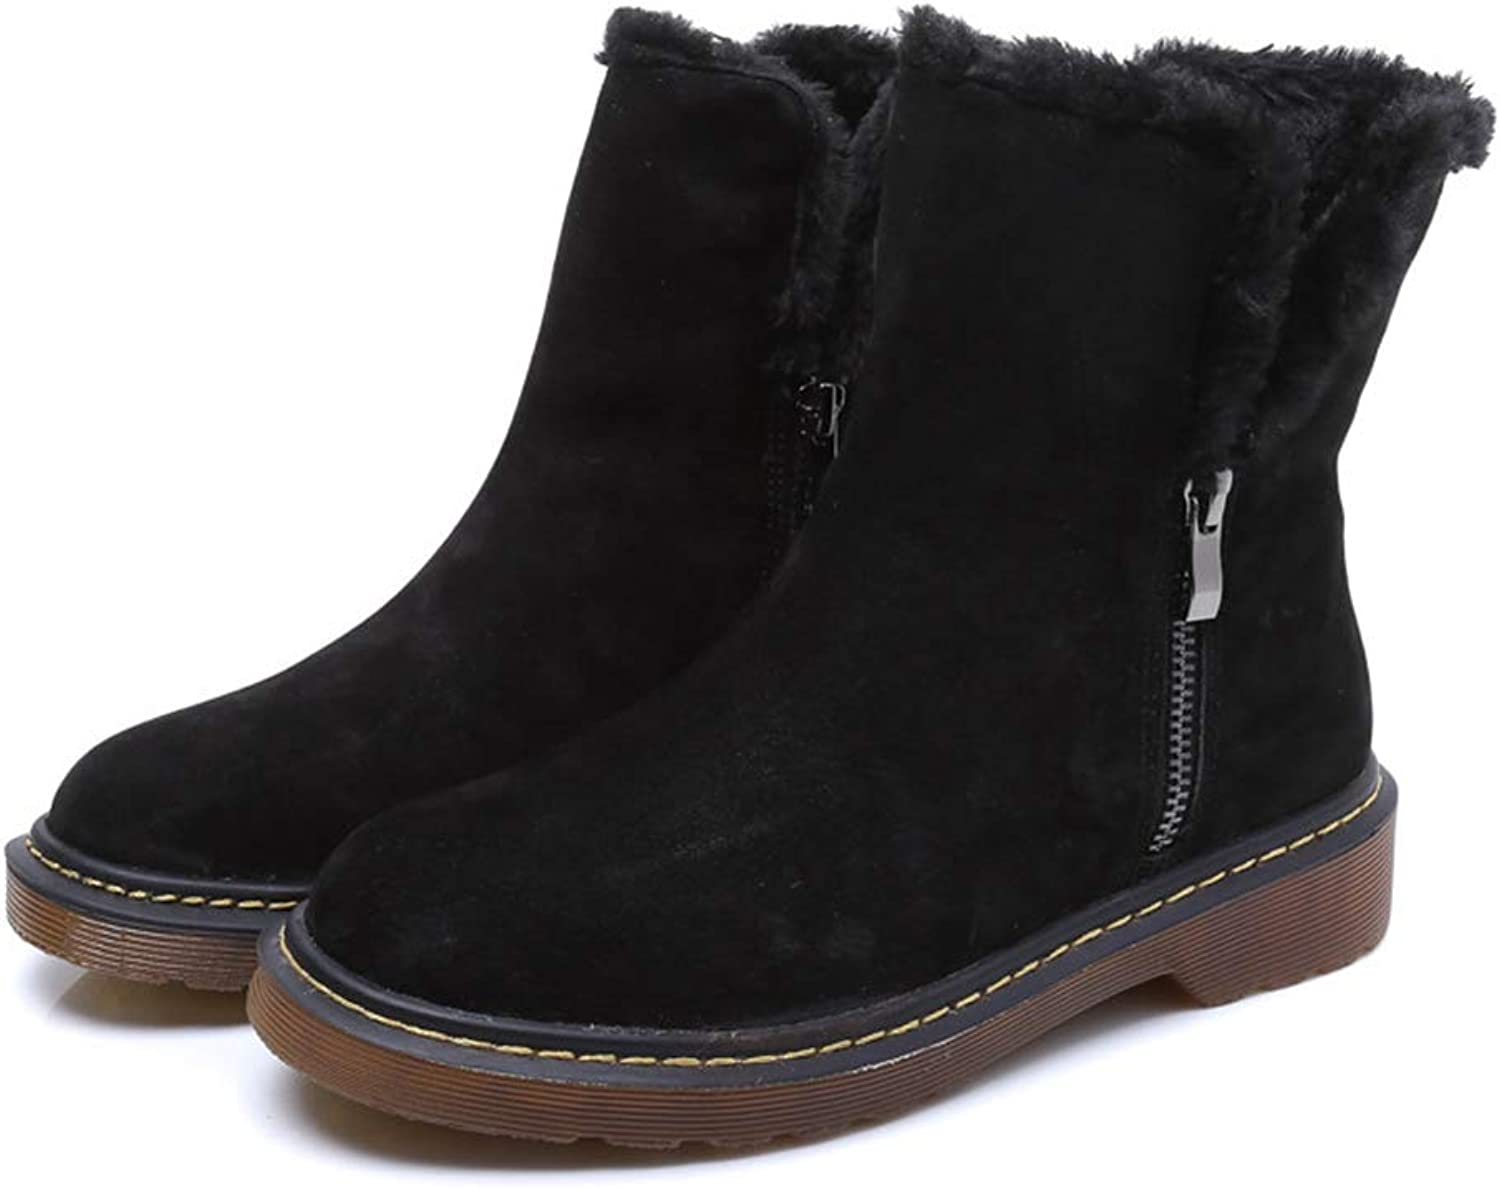 Snow Boot Ankle Faux Fur Plush Slip-on Winter Warm Black Beige Casual Outdoor Boots